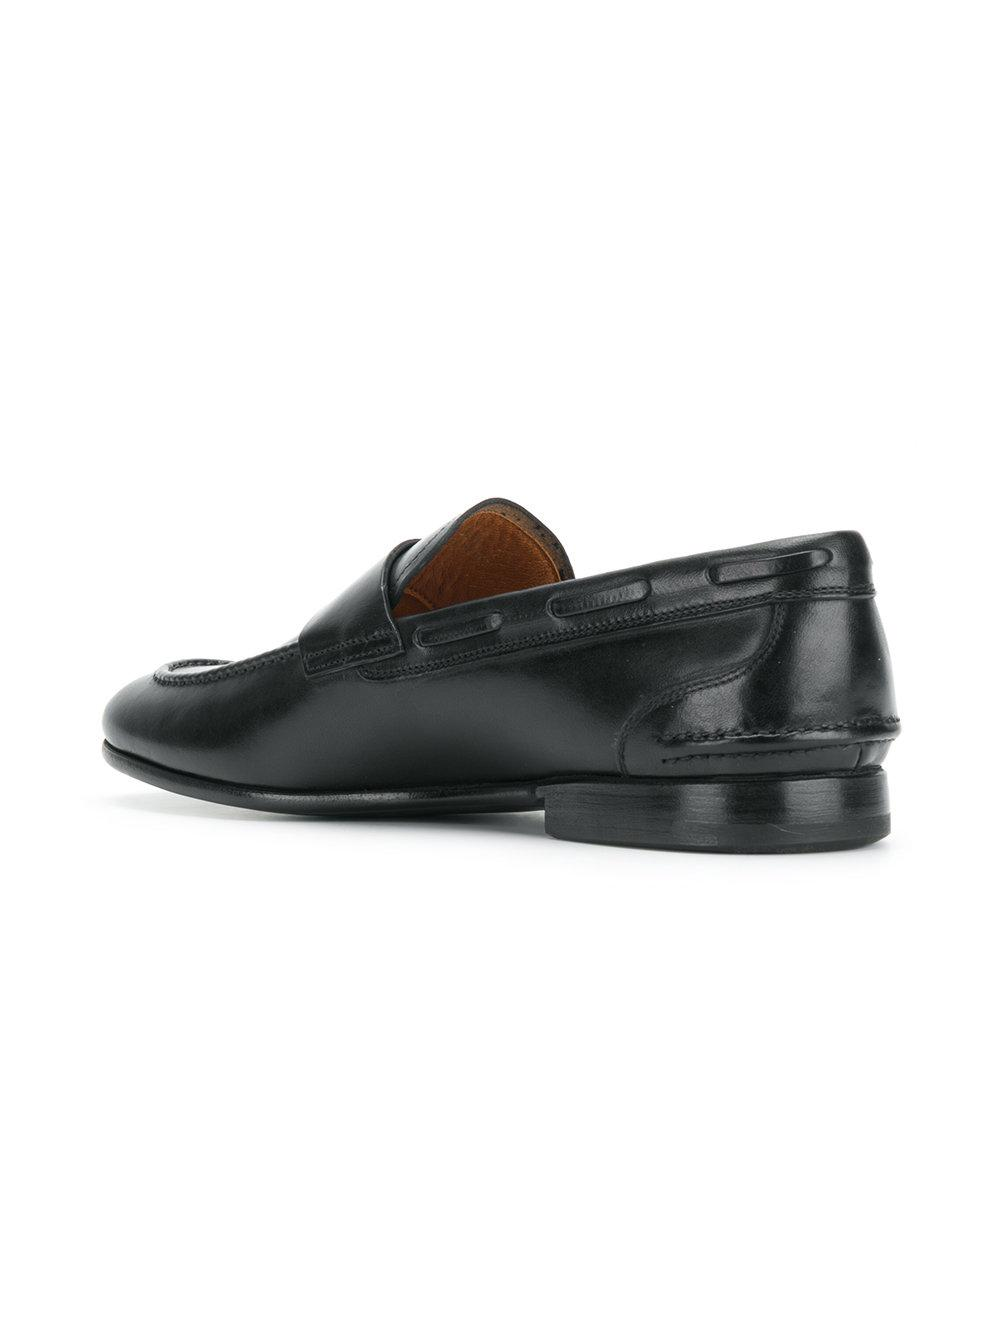 Premiata Penny Loafers in Black for Men - Lyst 302bf75d85d